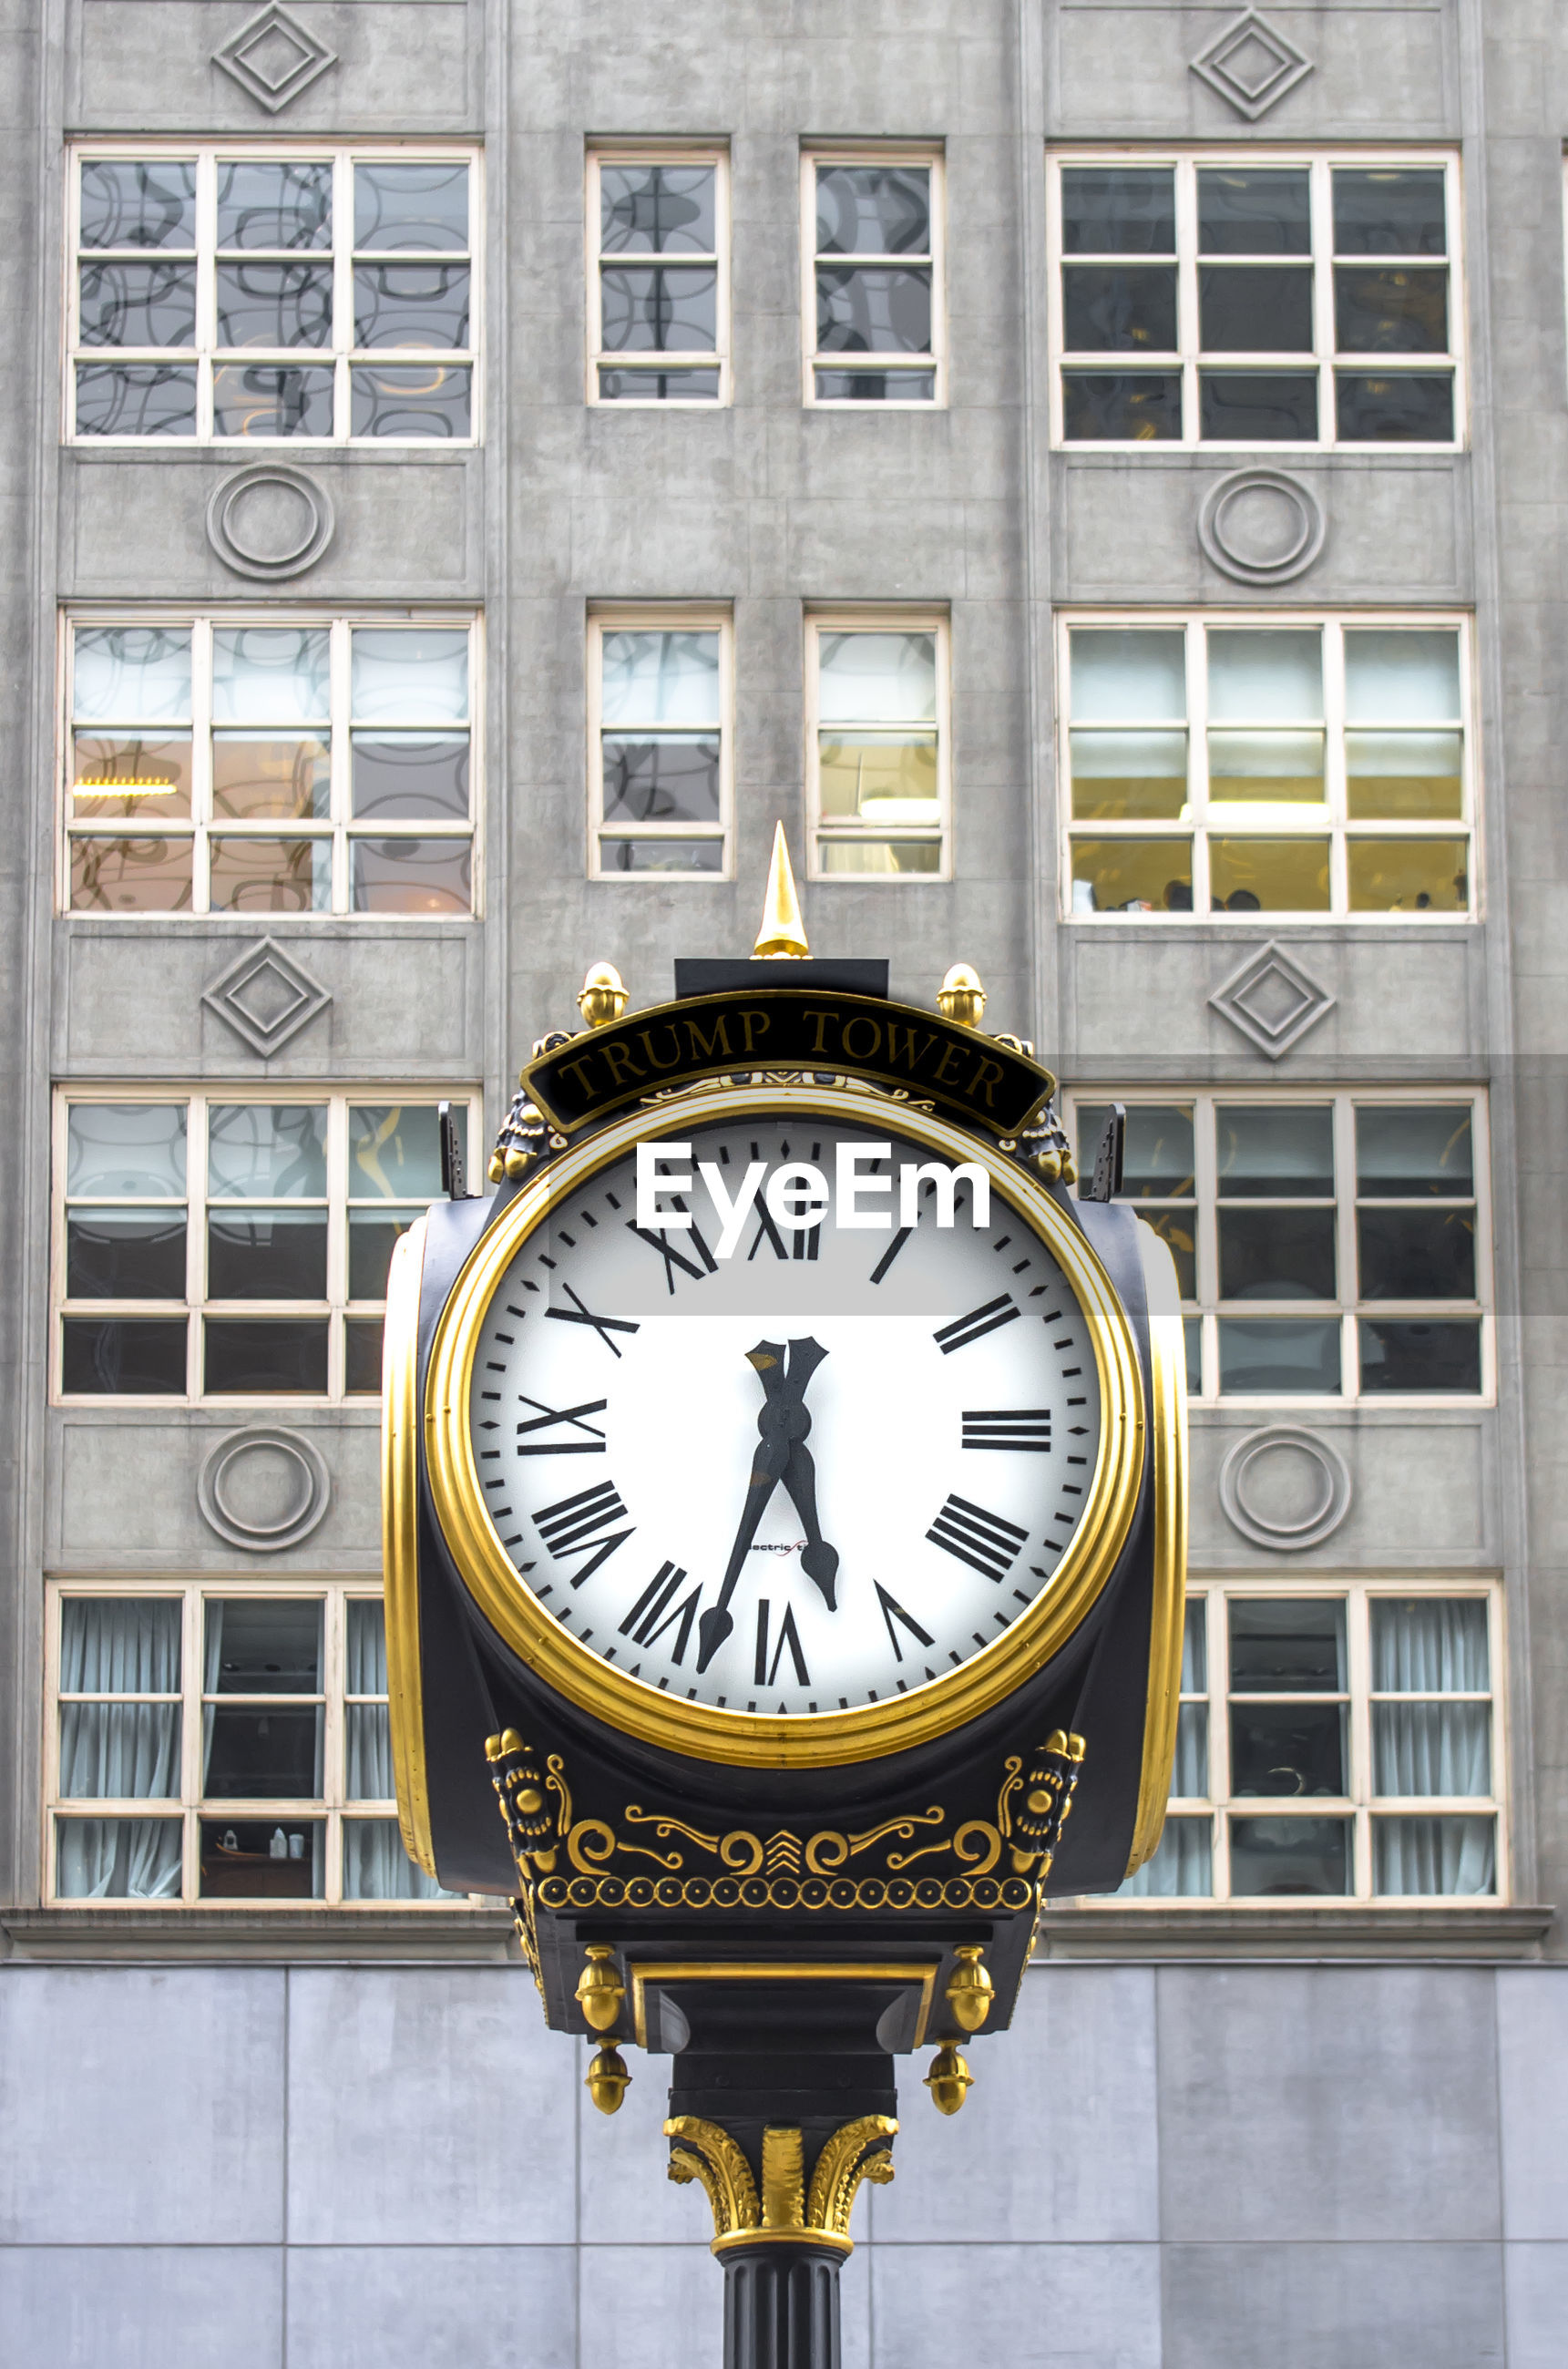 Low angle view of clock against building in city